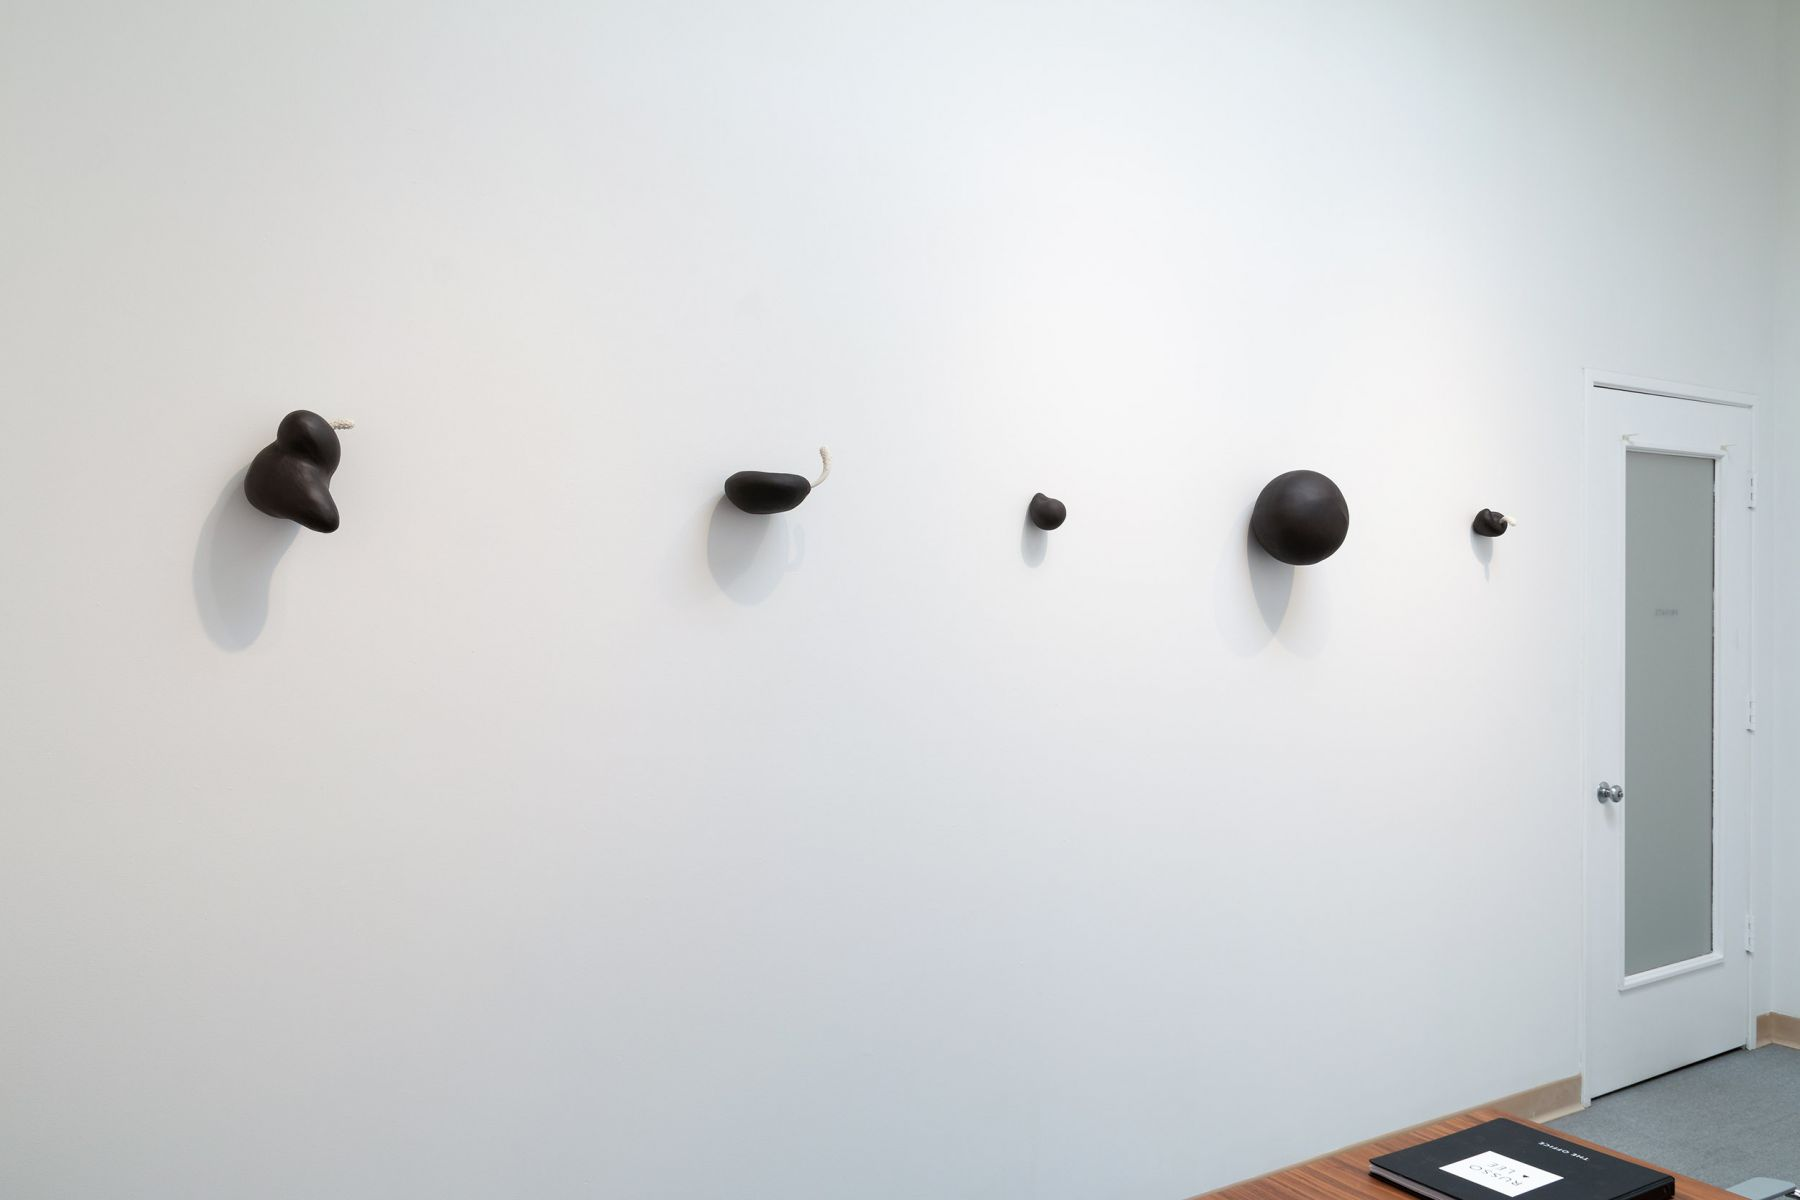 """Maya Vivas - selections from """"i have no choice but to suck the juice out, and who am i to blame"""" - July/August 2019 - Russo Lee Gallery - Installation view 05"""